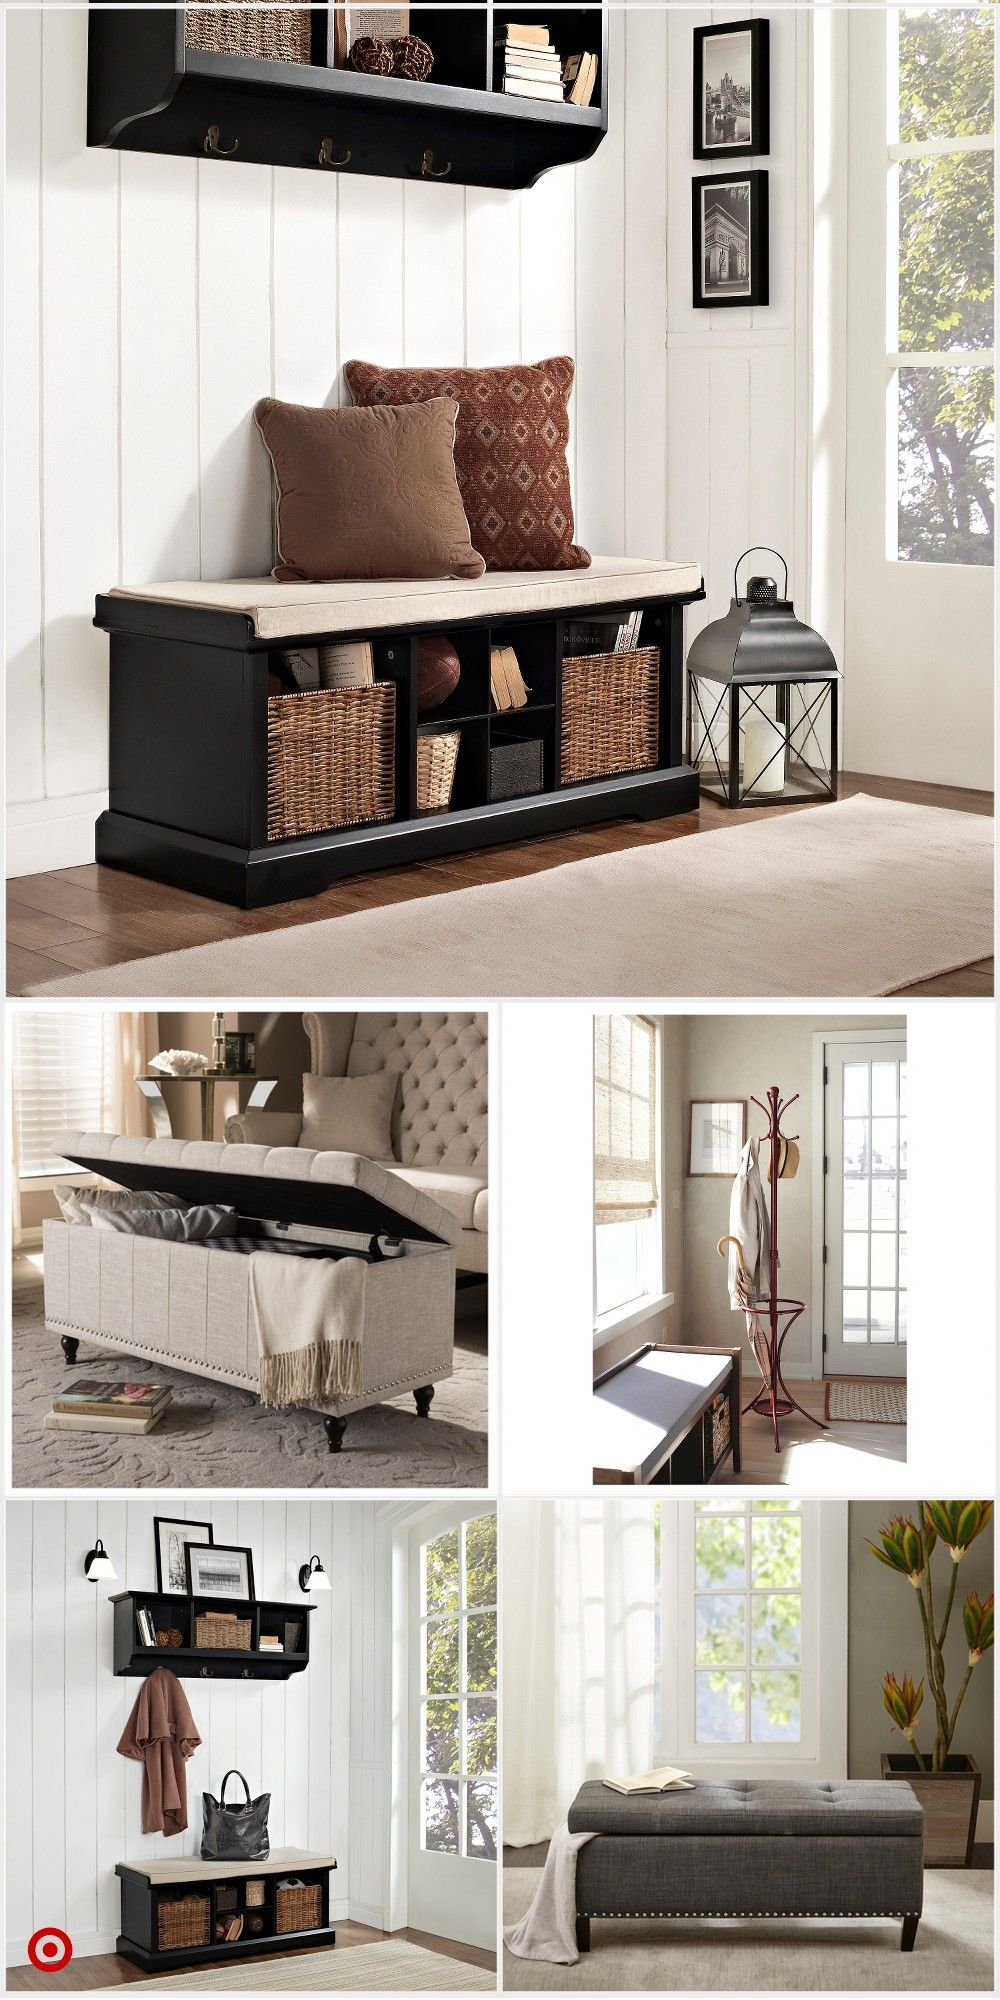 Shop Target For Storage Bench You Will Love At Great Low Prices Free Shipping On Orders Of Farm House Living Room Living Room Decor Apartment Home Living Room